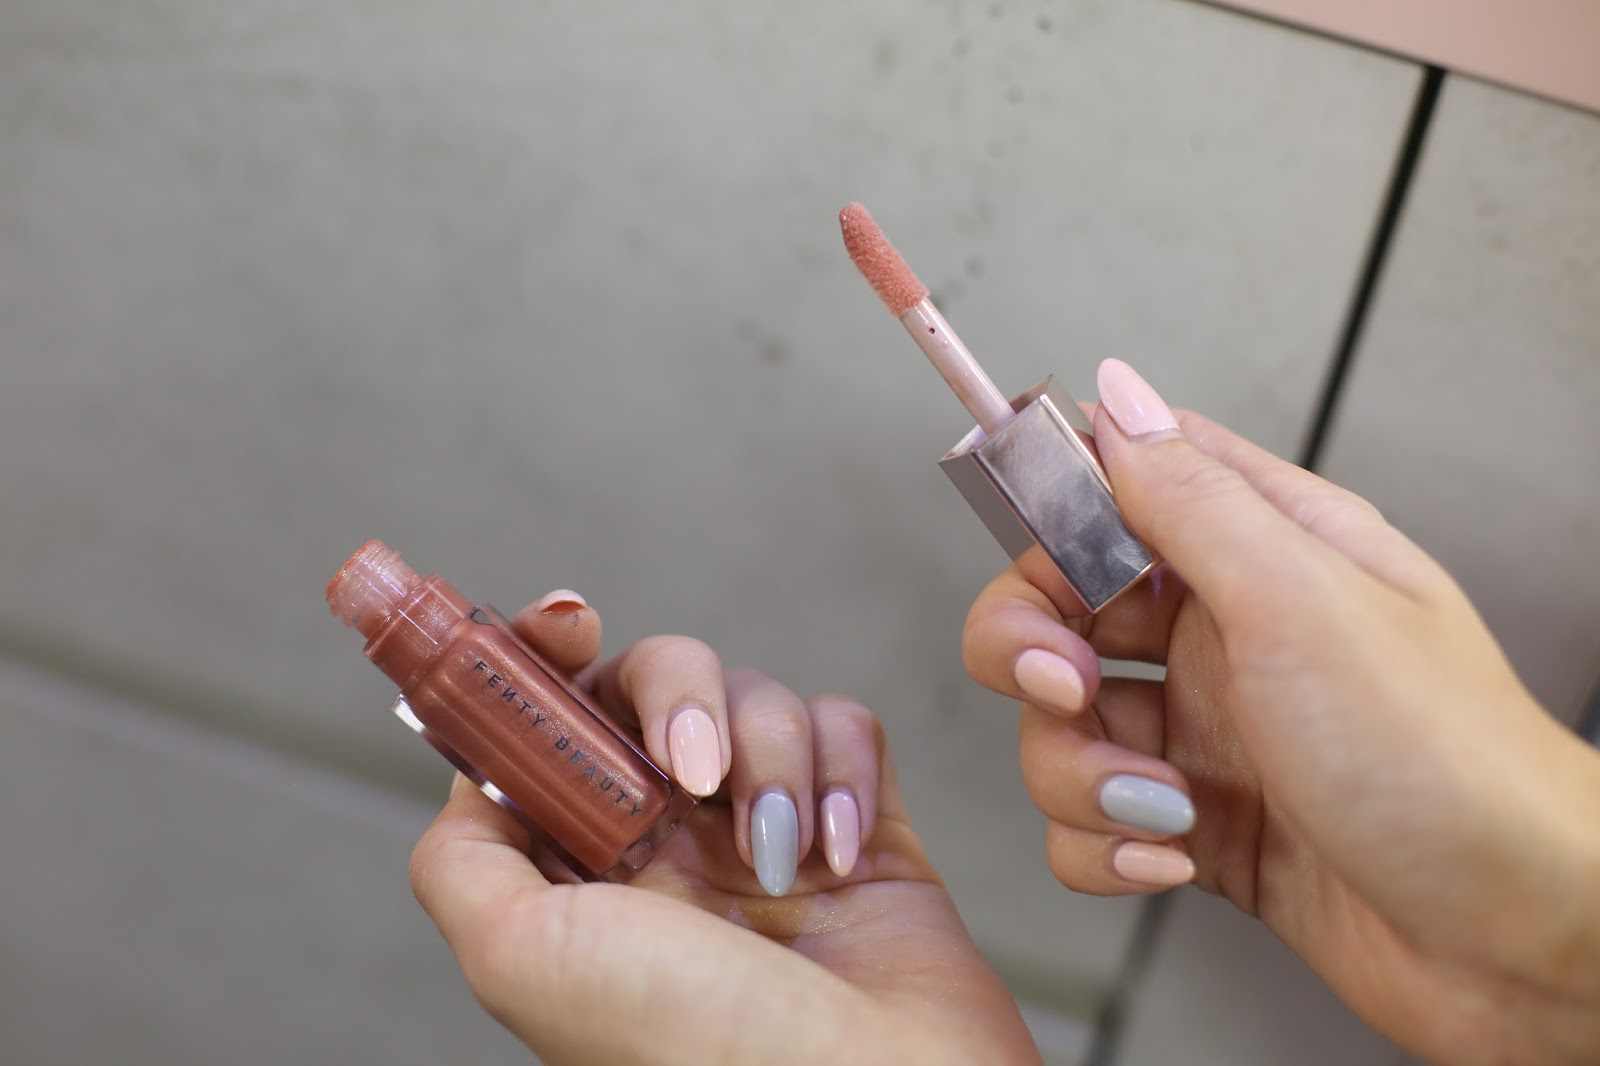 fenty beauty lipgloss